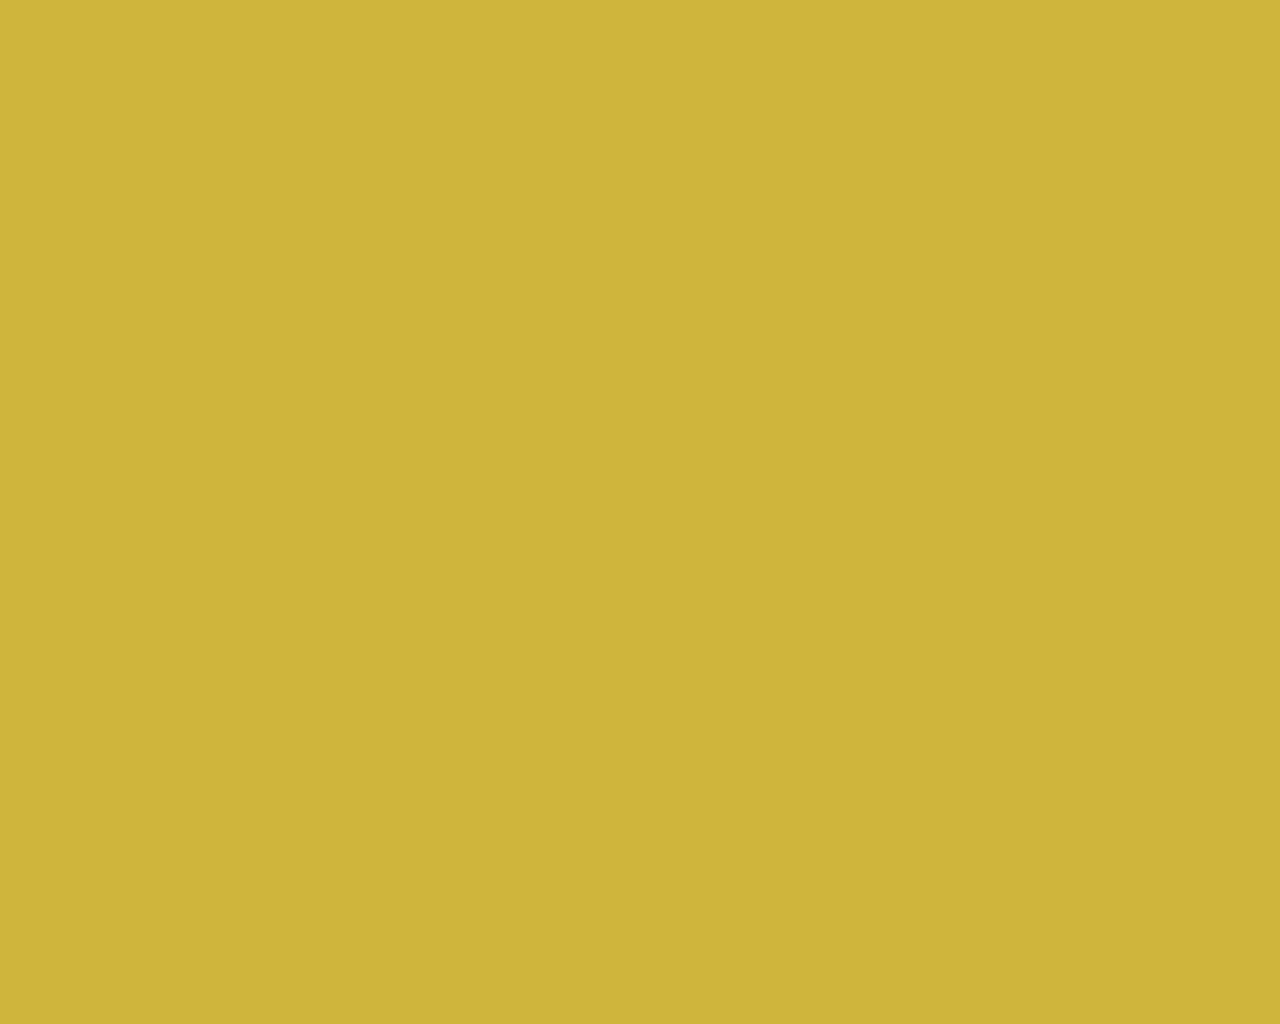 Gold Color Backgrounds 1280x1024